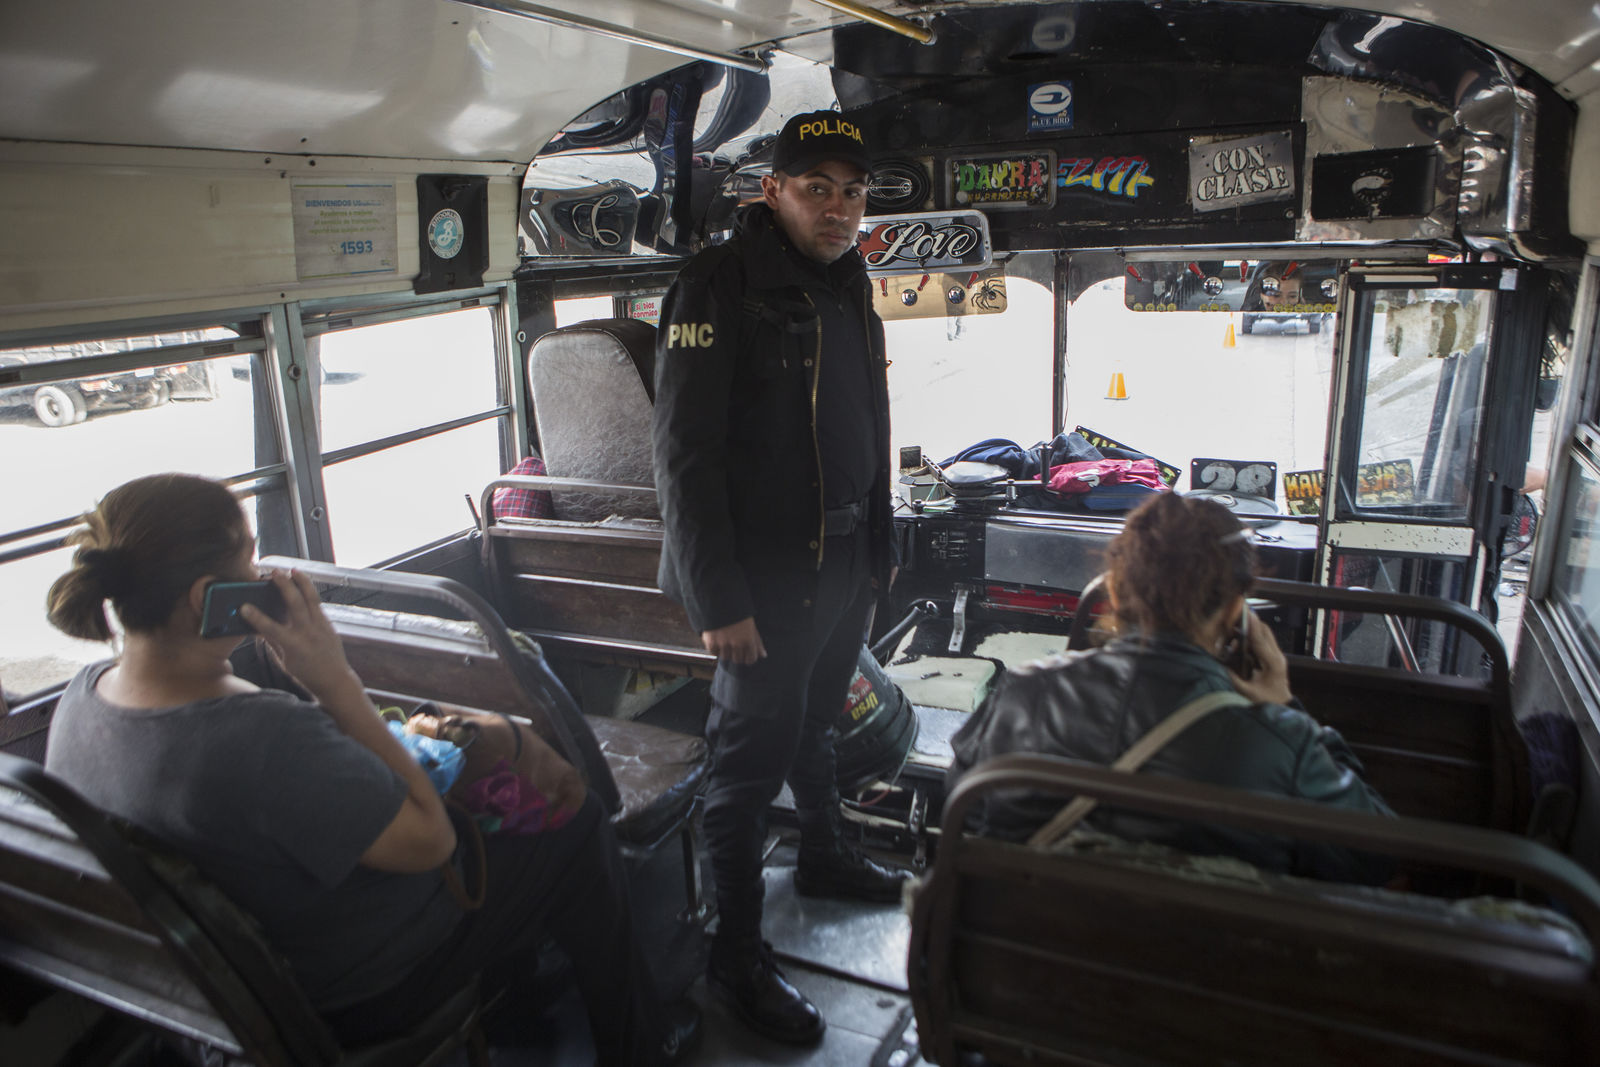 A police officer stands inside a bus after it was stopped to search its passengers at a security checkpoint in the El Milagro area of the Mixco municipality on the outskirts of Guatemala City, Friday, Jan. 17, 2020. Guatemala's new president announced a state of alert for two municipalities with high crime rates to combat gang activity Friday, a measure that allows the deployment of military troops. (AP Photo/Oliver de Ros)